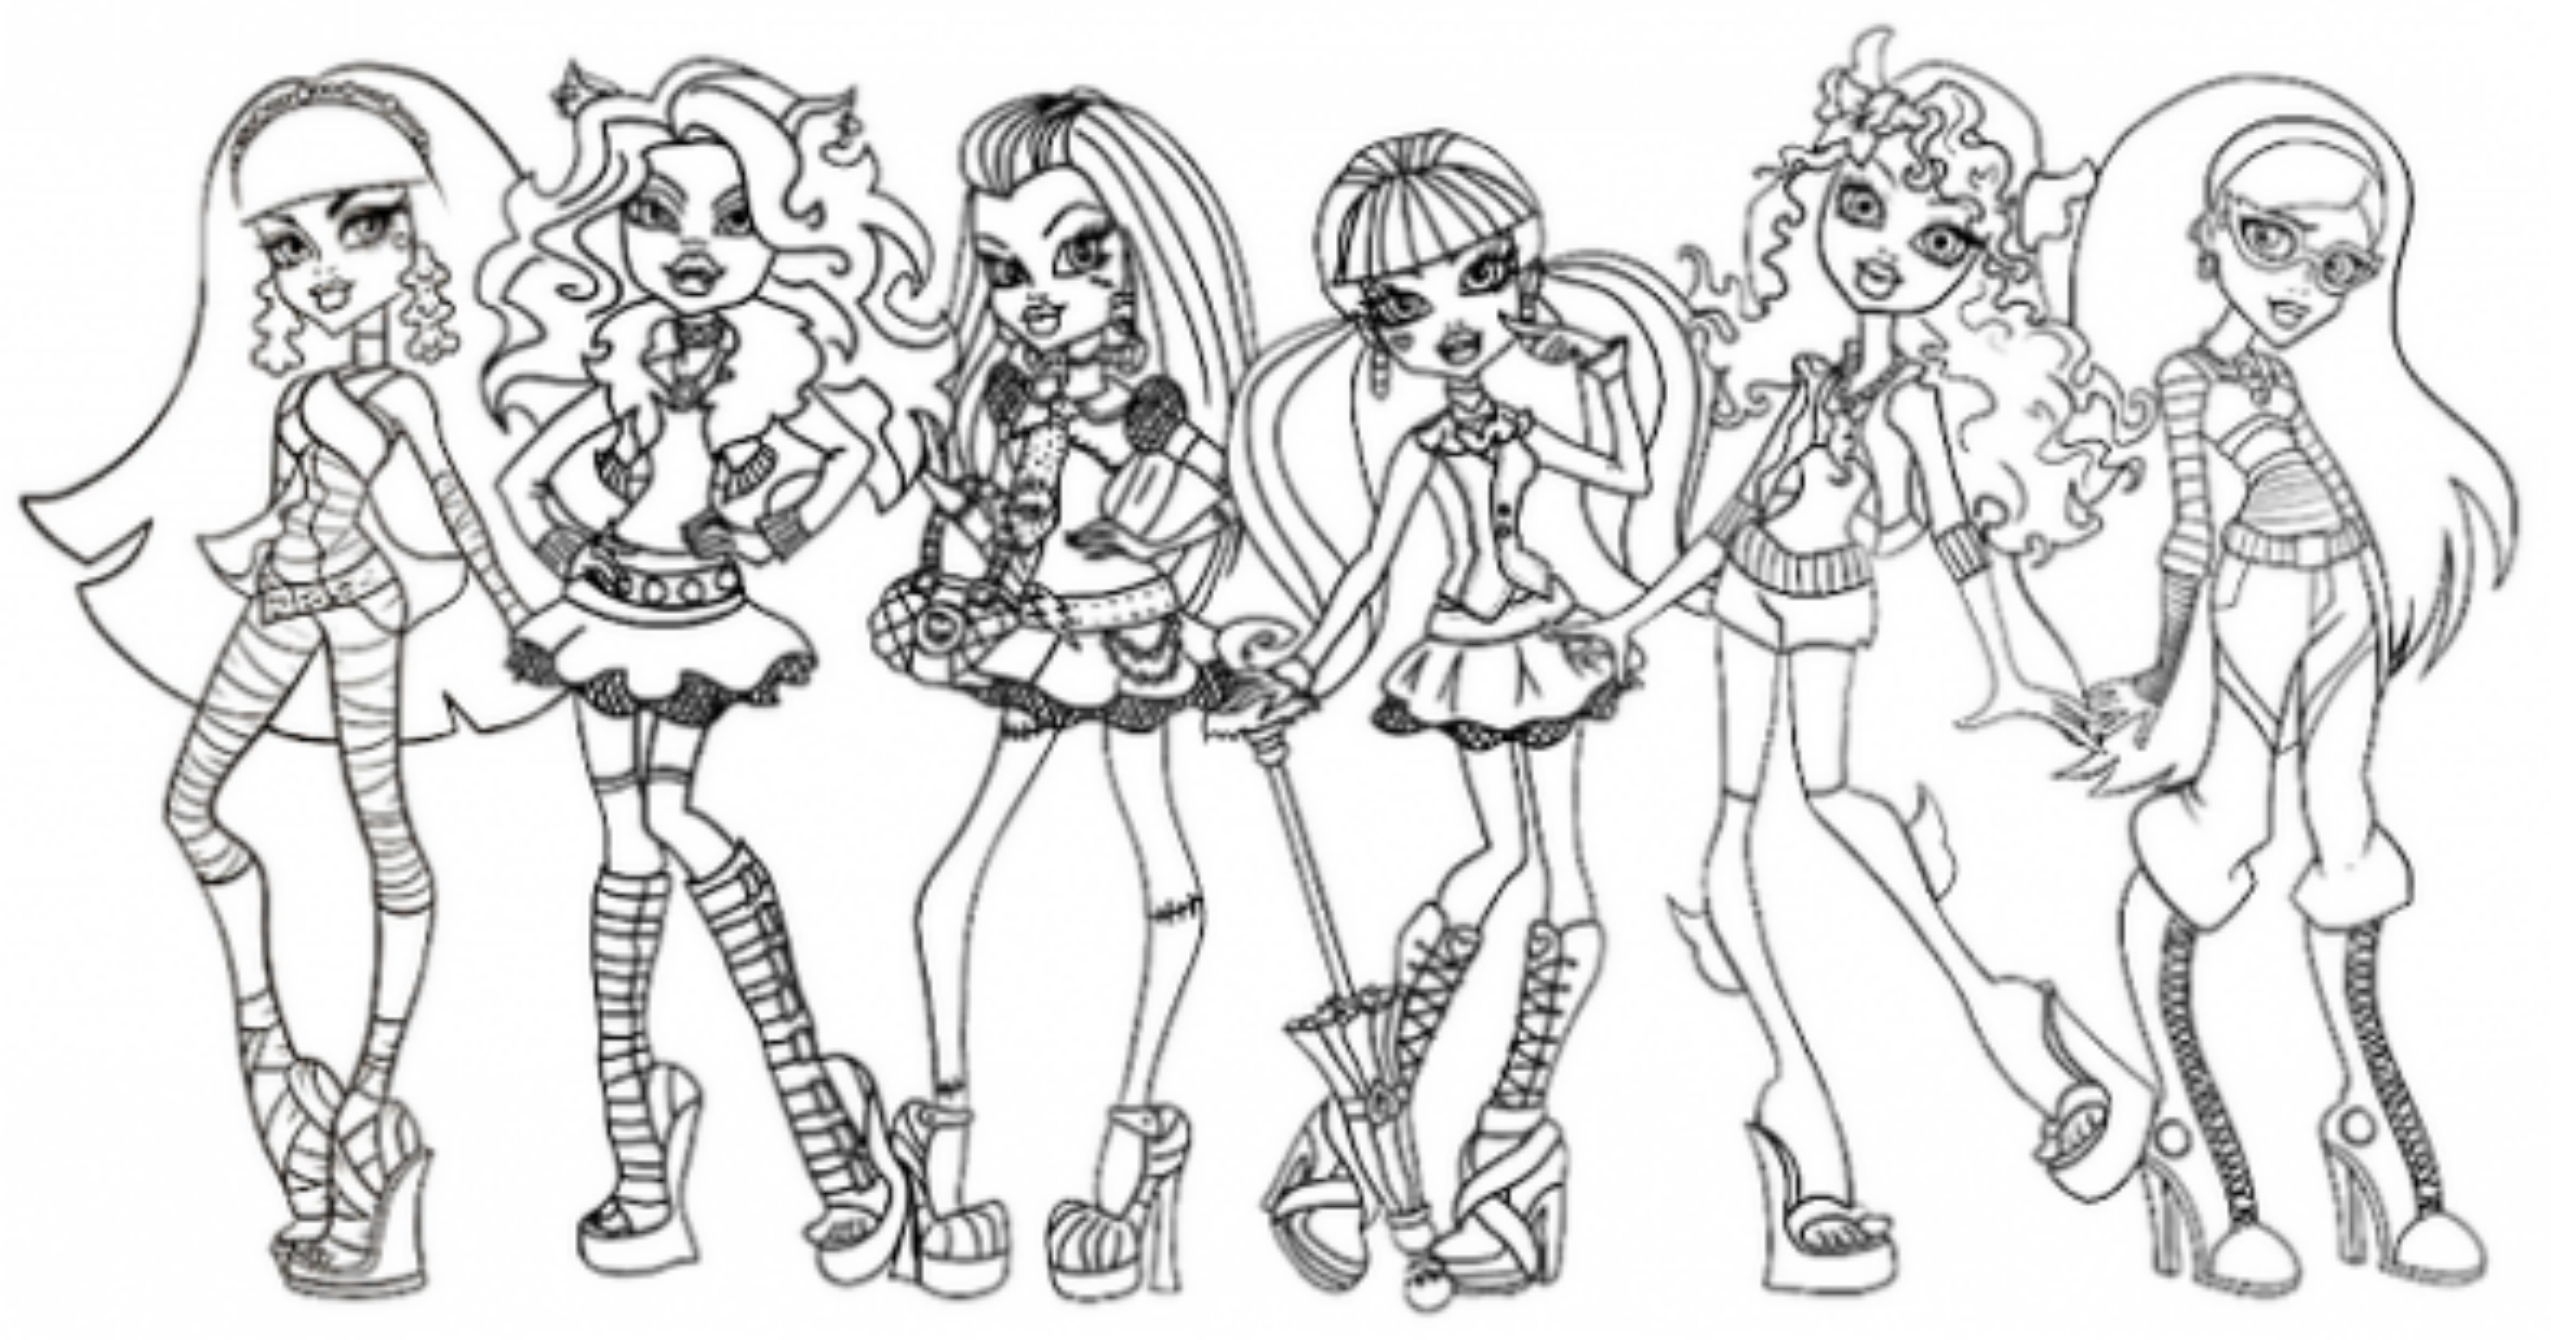 Monster High Coloring Page All Characters Printable Monster High Download Of Monster High Coloring Pages Monster High Coloring Page All Collection